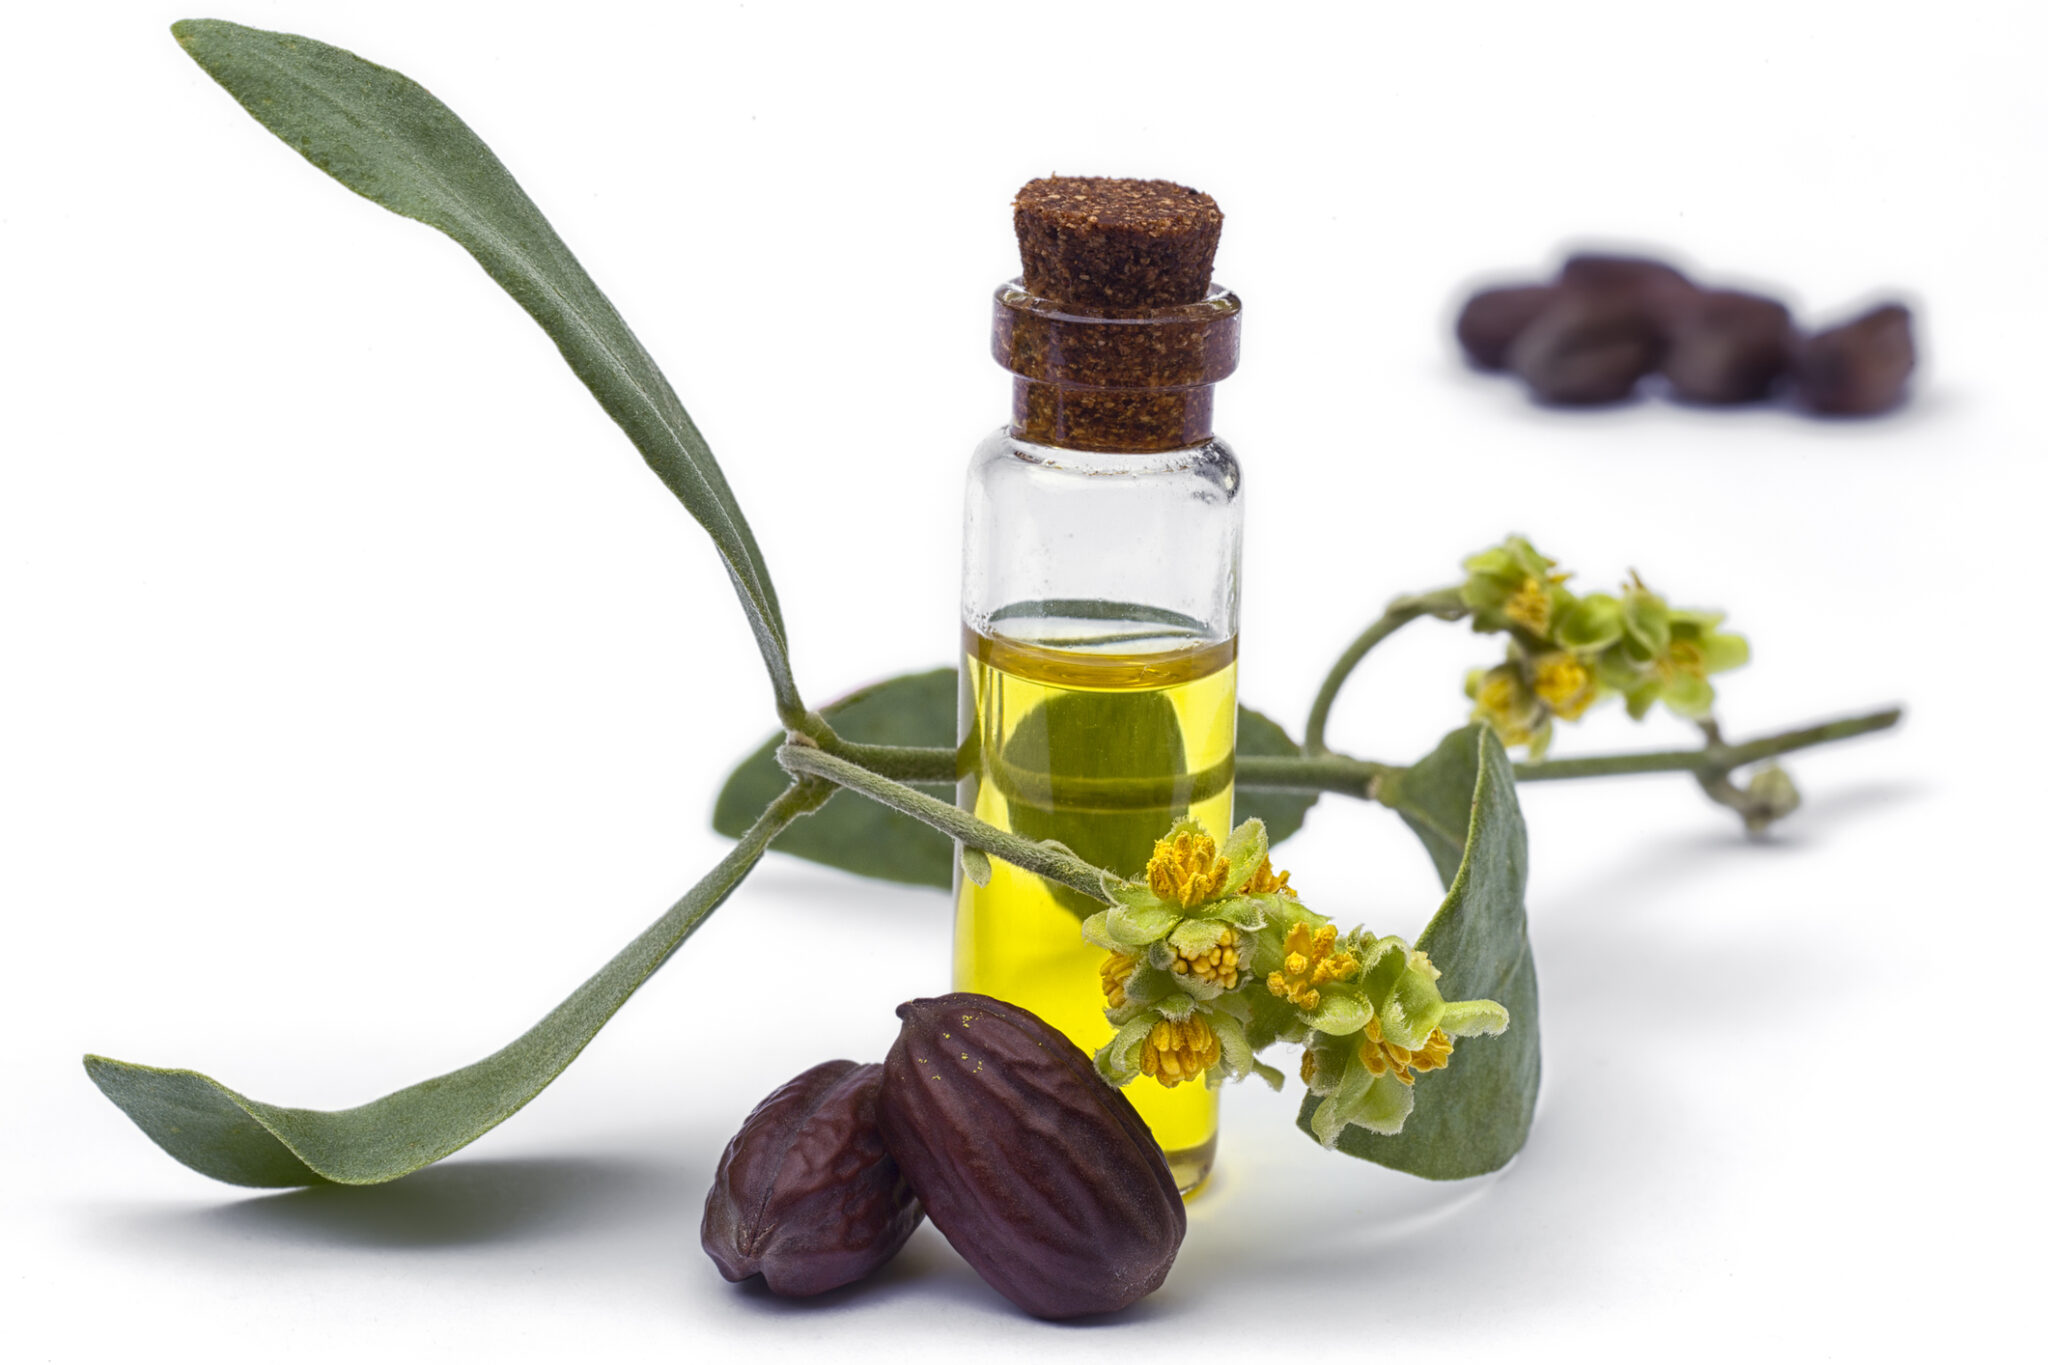 Jojoba oil next to the jojoba plant